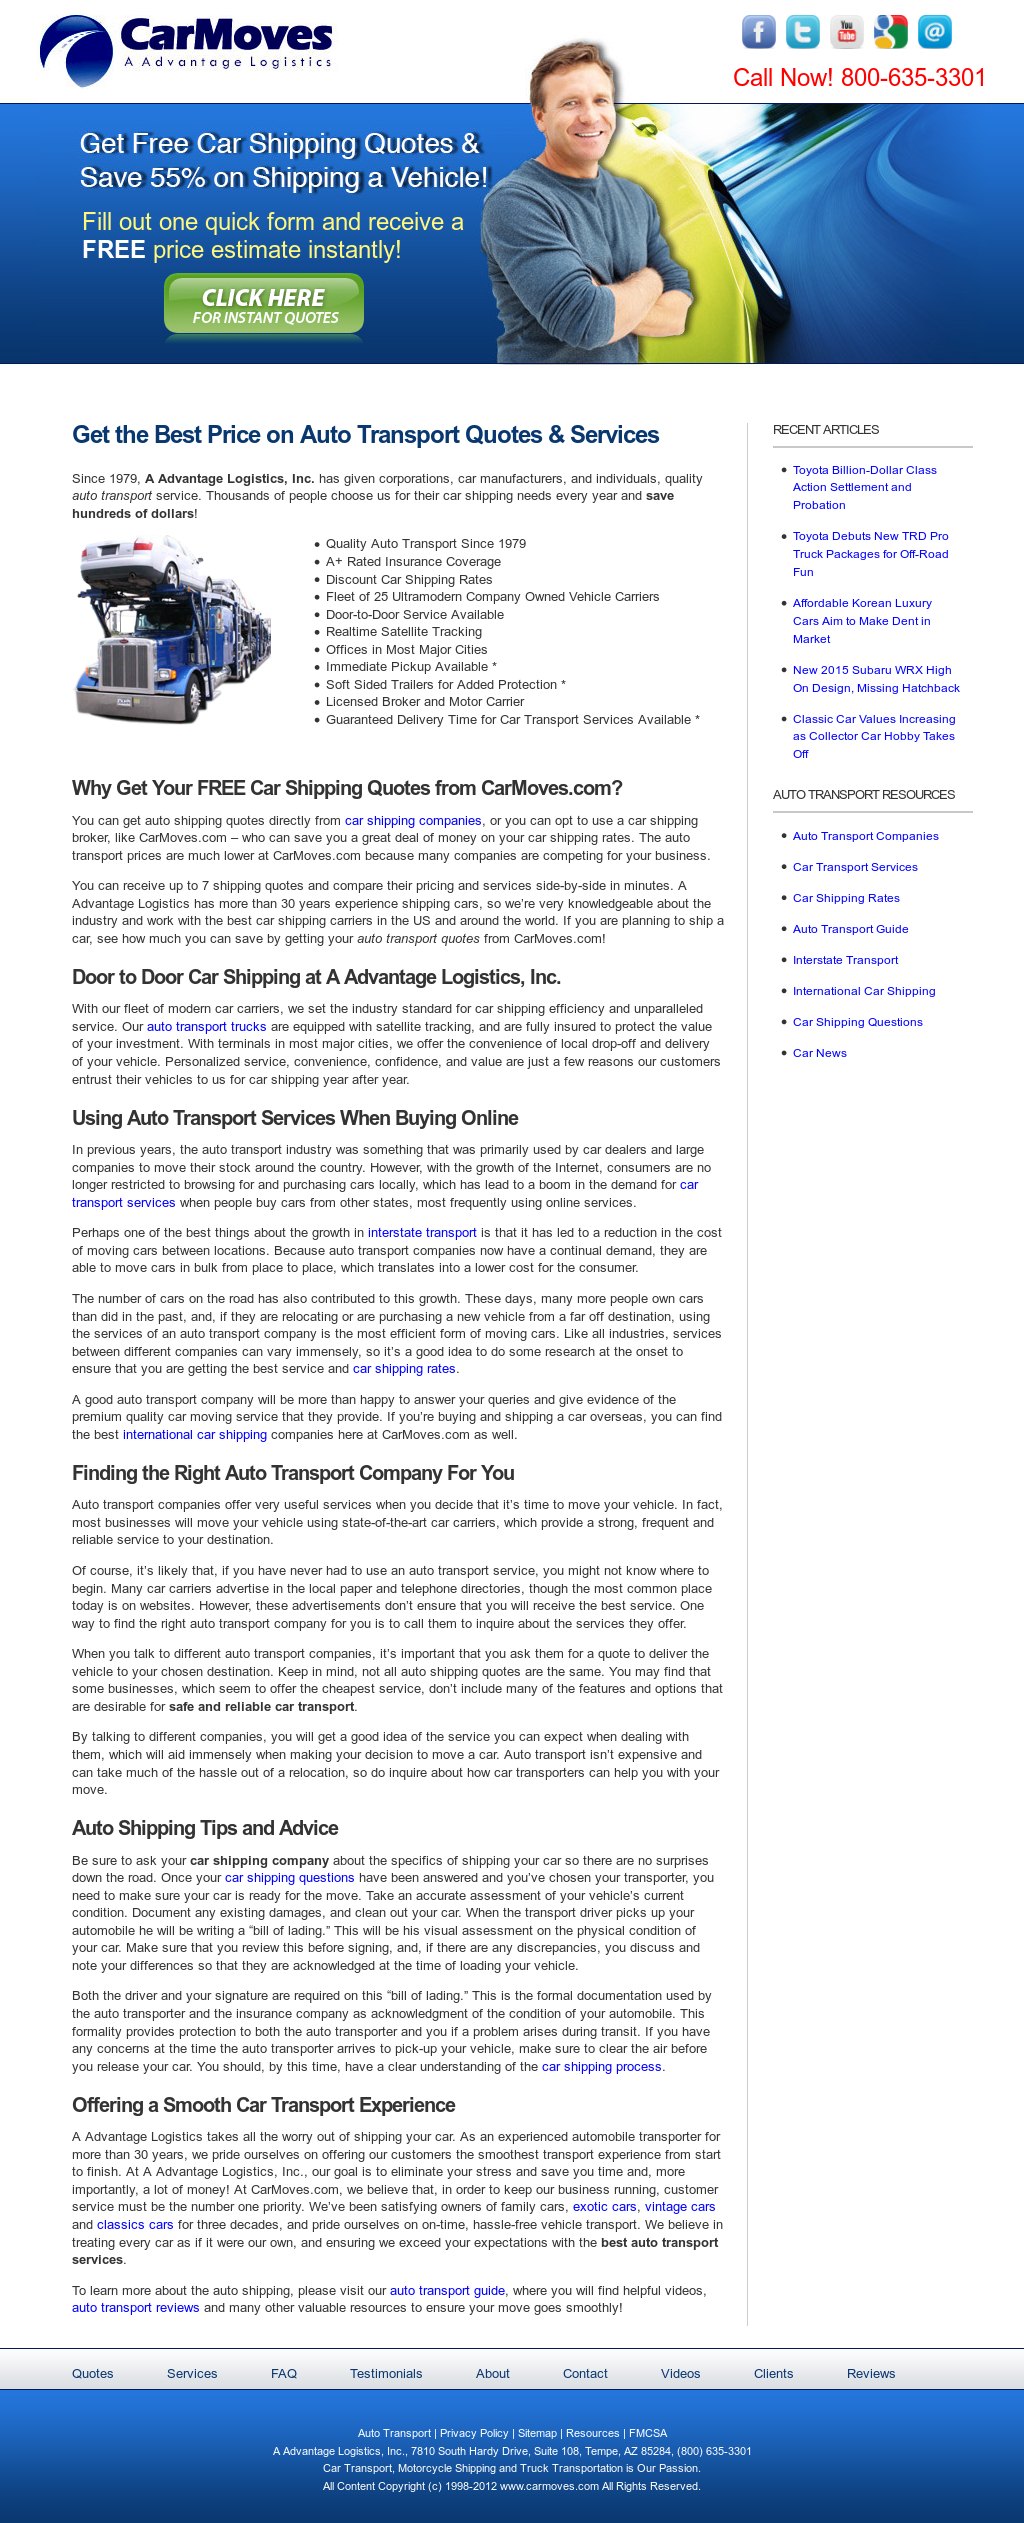 CarMoves Competitors, Revenue and Employees - Owler Company